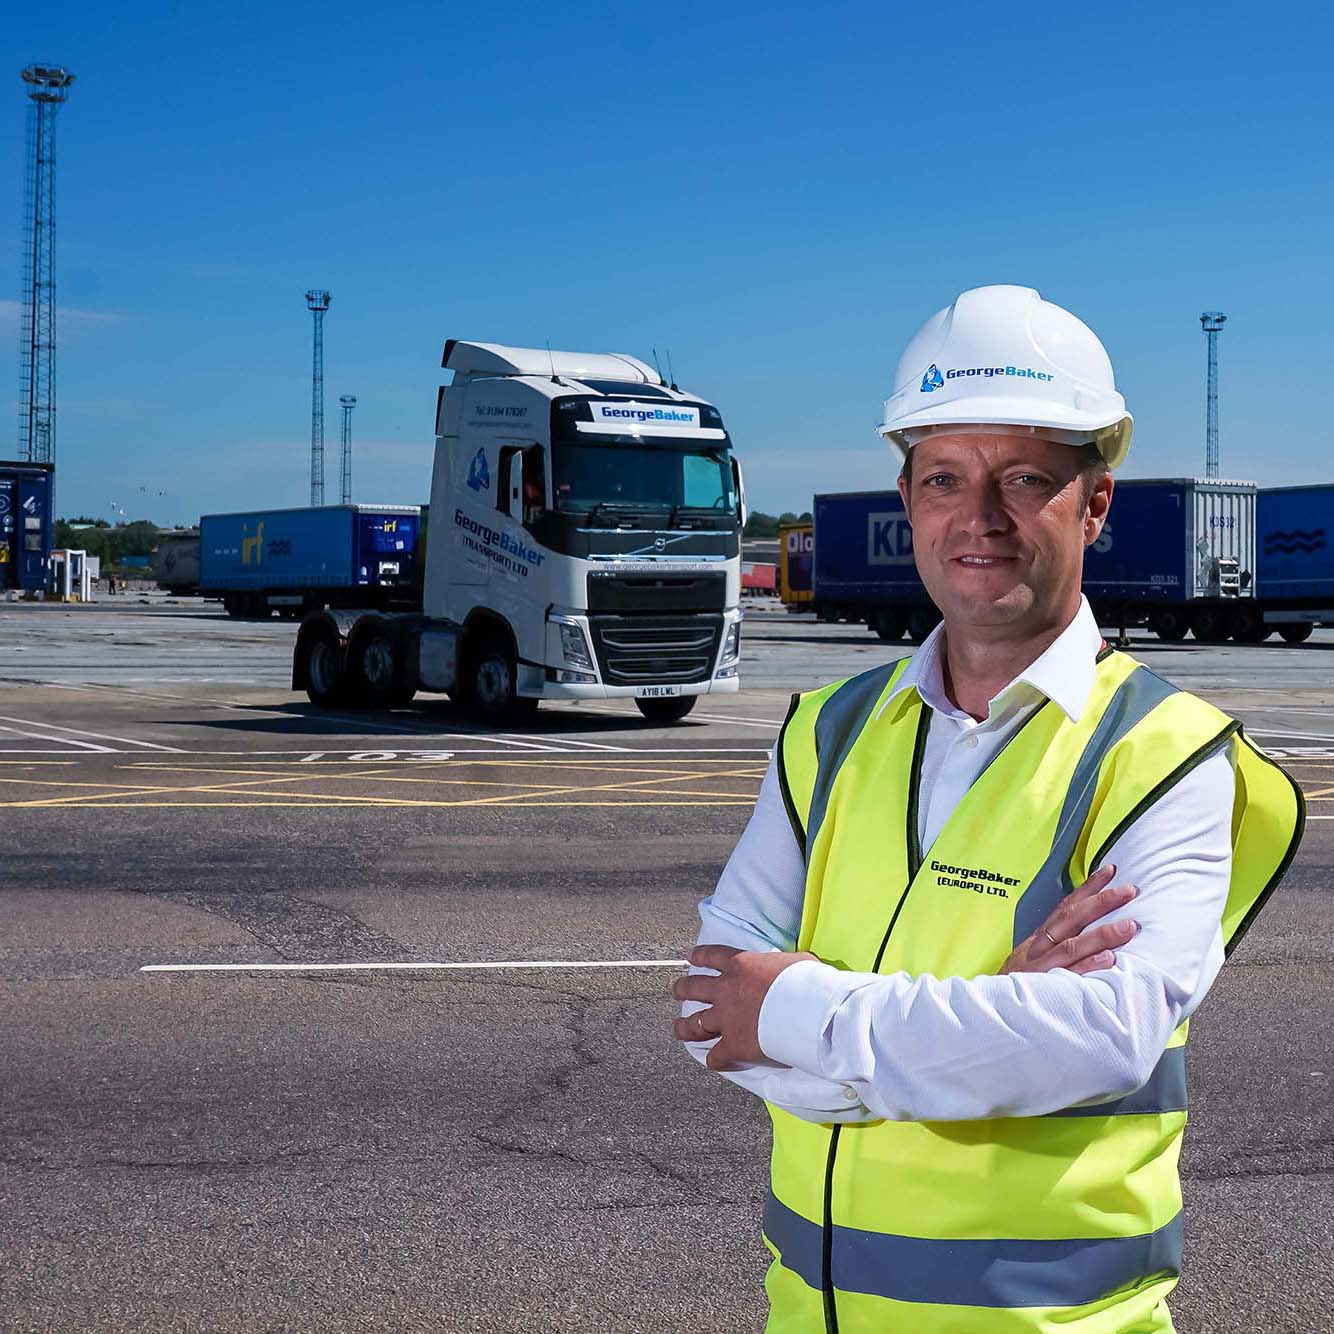 Commercial shoot at George Baker (Shipping) Ltd, 4 Parker Ave, Felixstowe, on 05-July-2019. Picture: Stephen Waller  www.stephenwaller.com